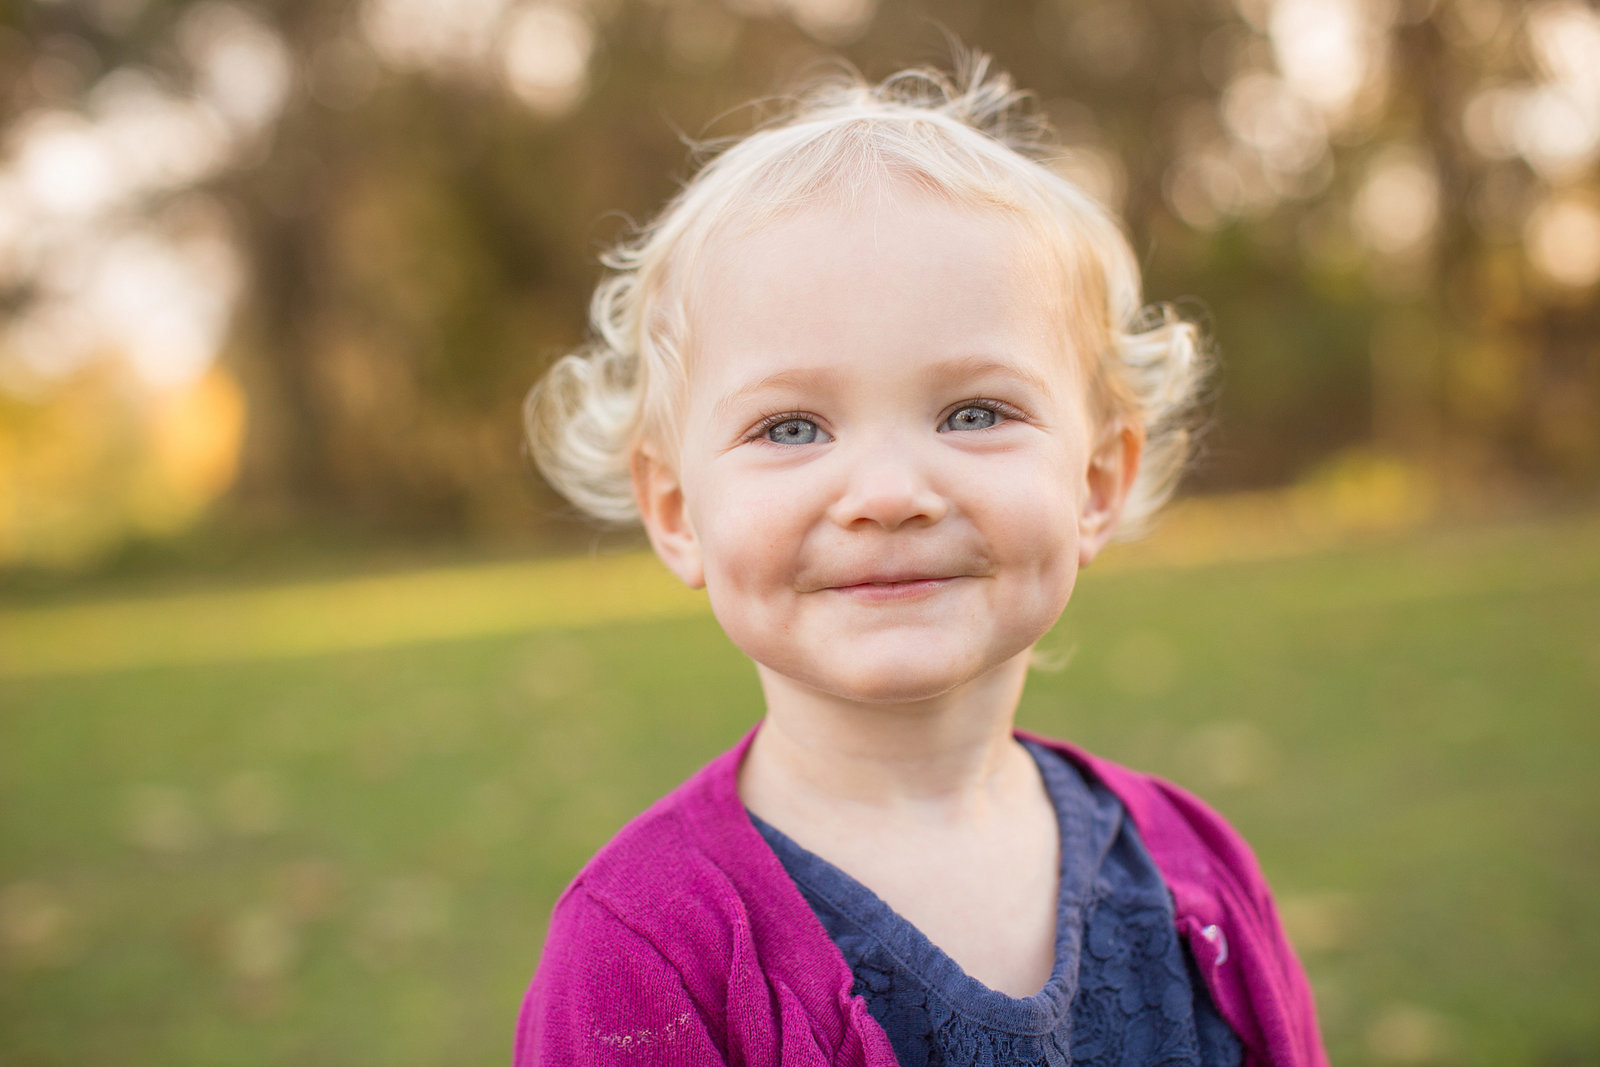 little girl poses for photo outside and smiling